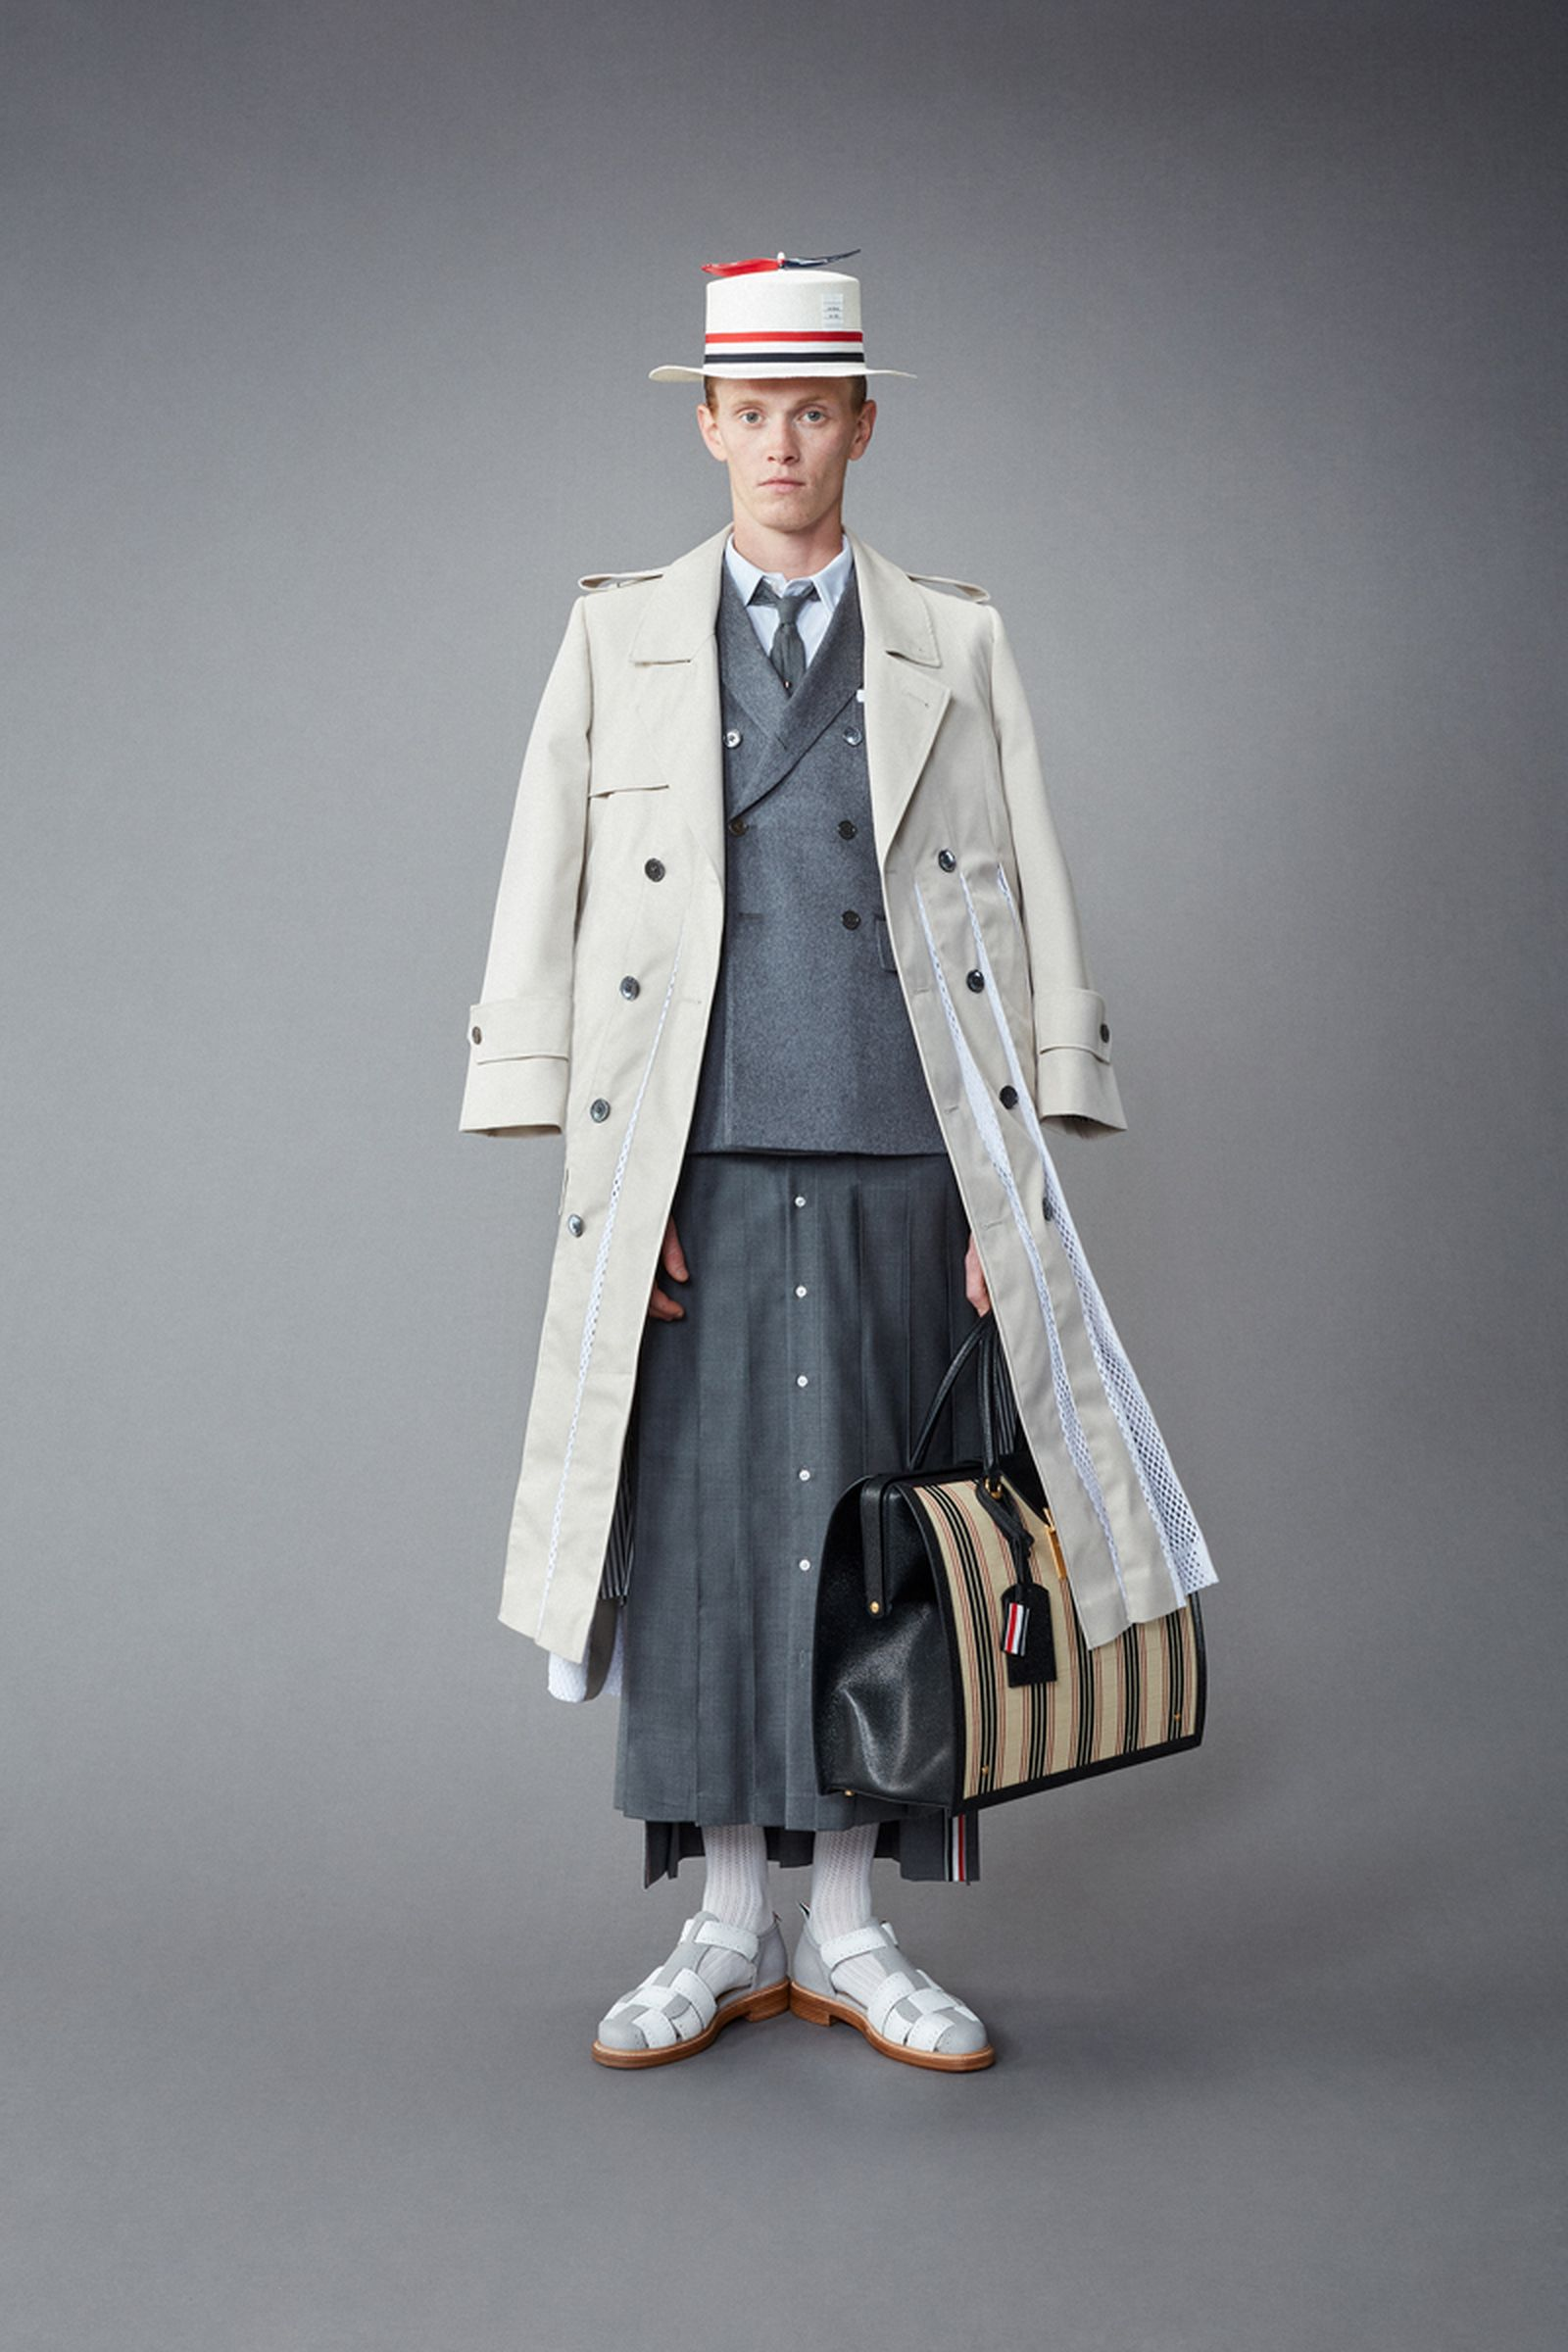 thom-browne-resort-2022-collection- (9)